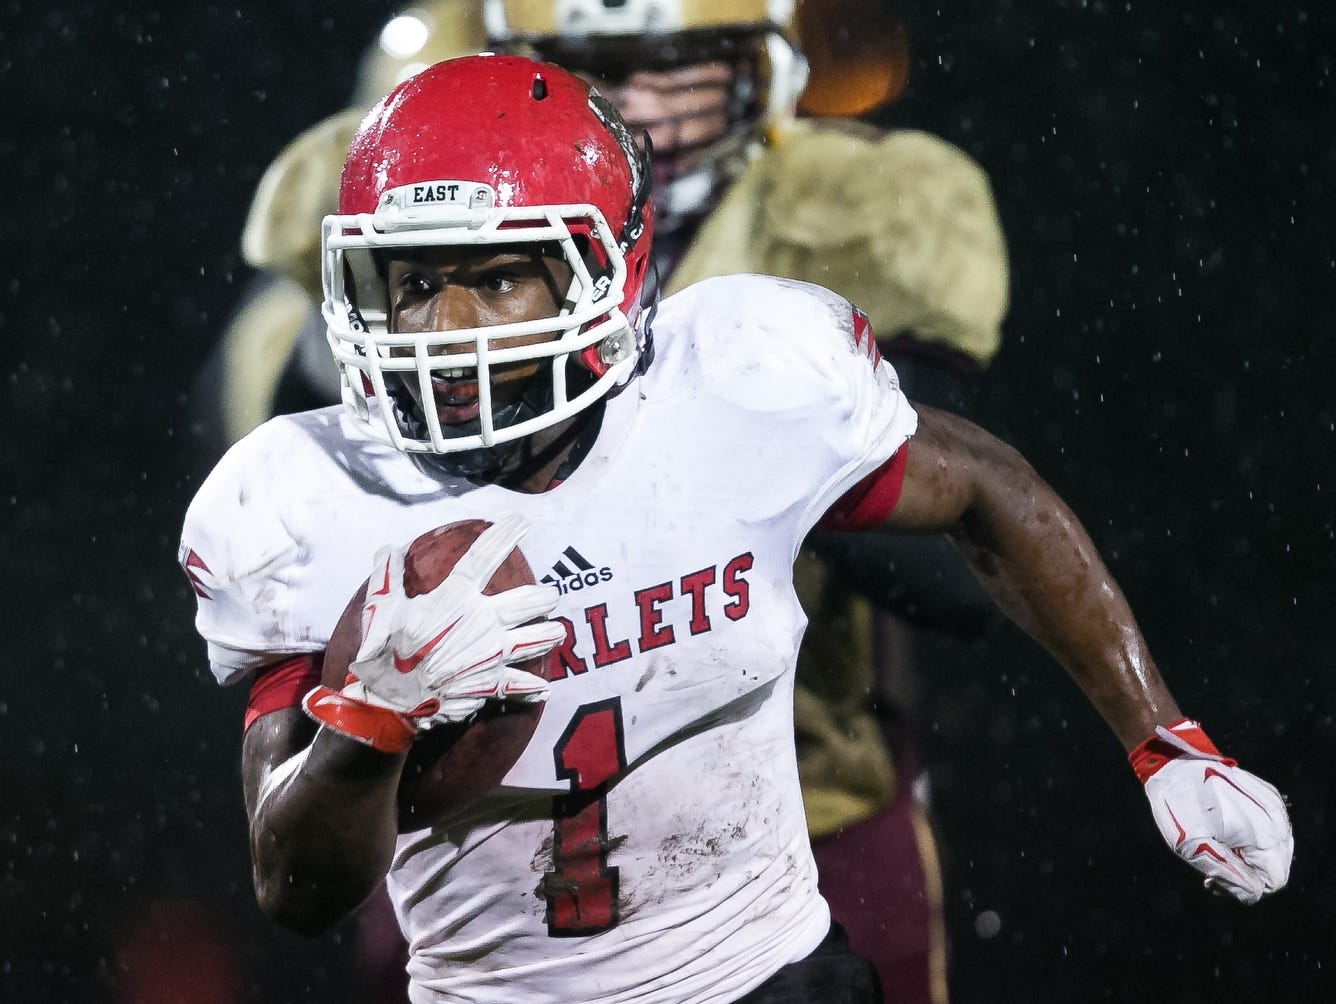 East High's Brandon Trotter rushes during their game against Lincoln at Lincoln High School in Des Moines on Friday, September 18, 2015.